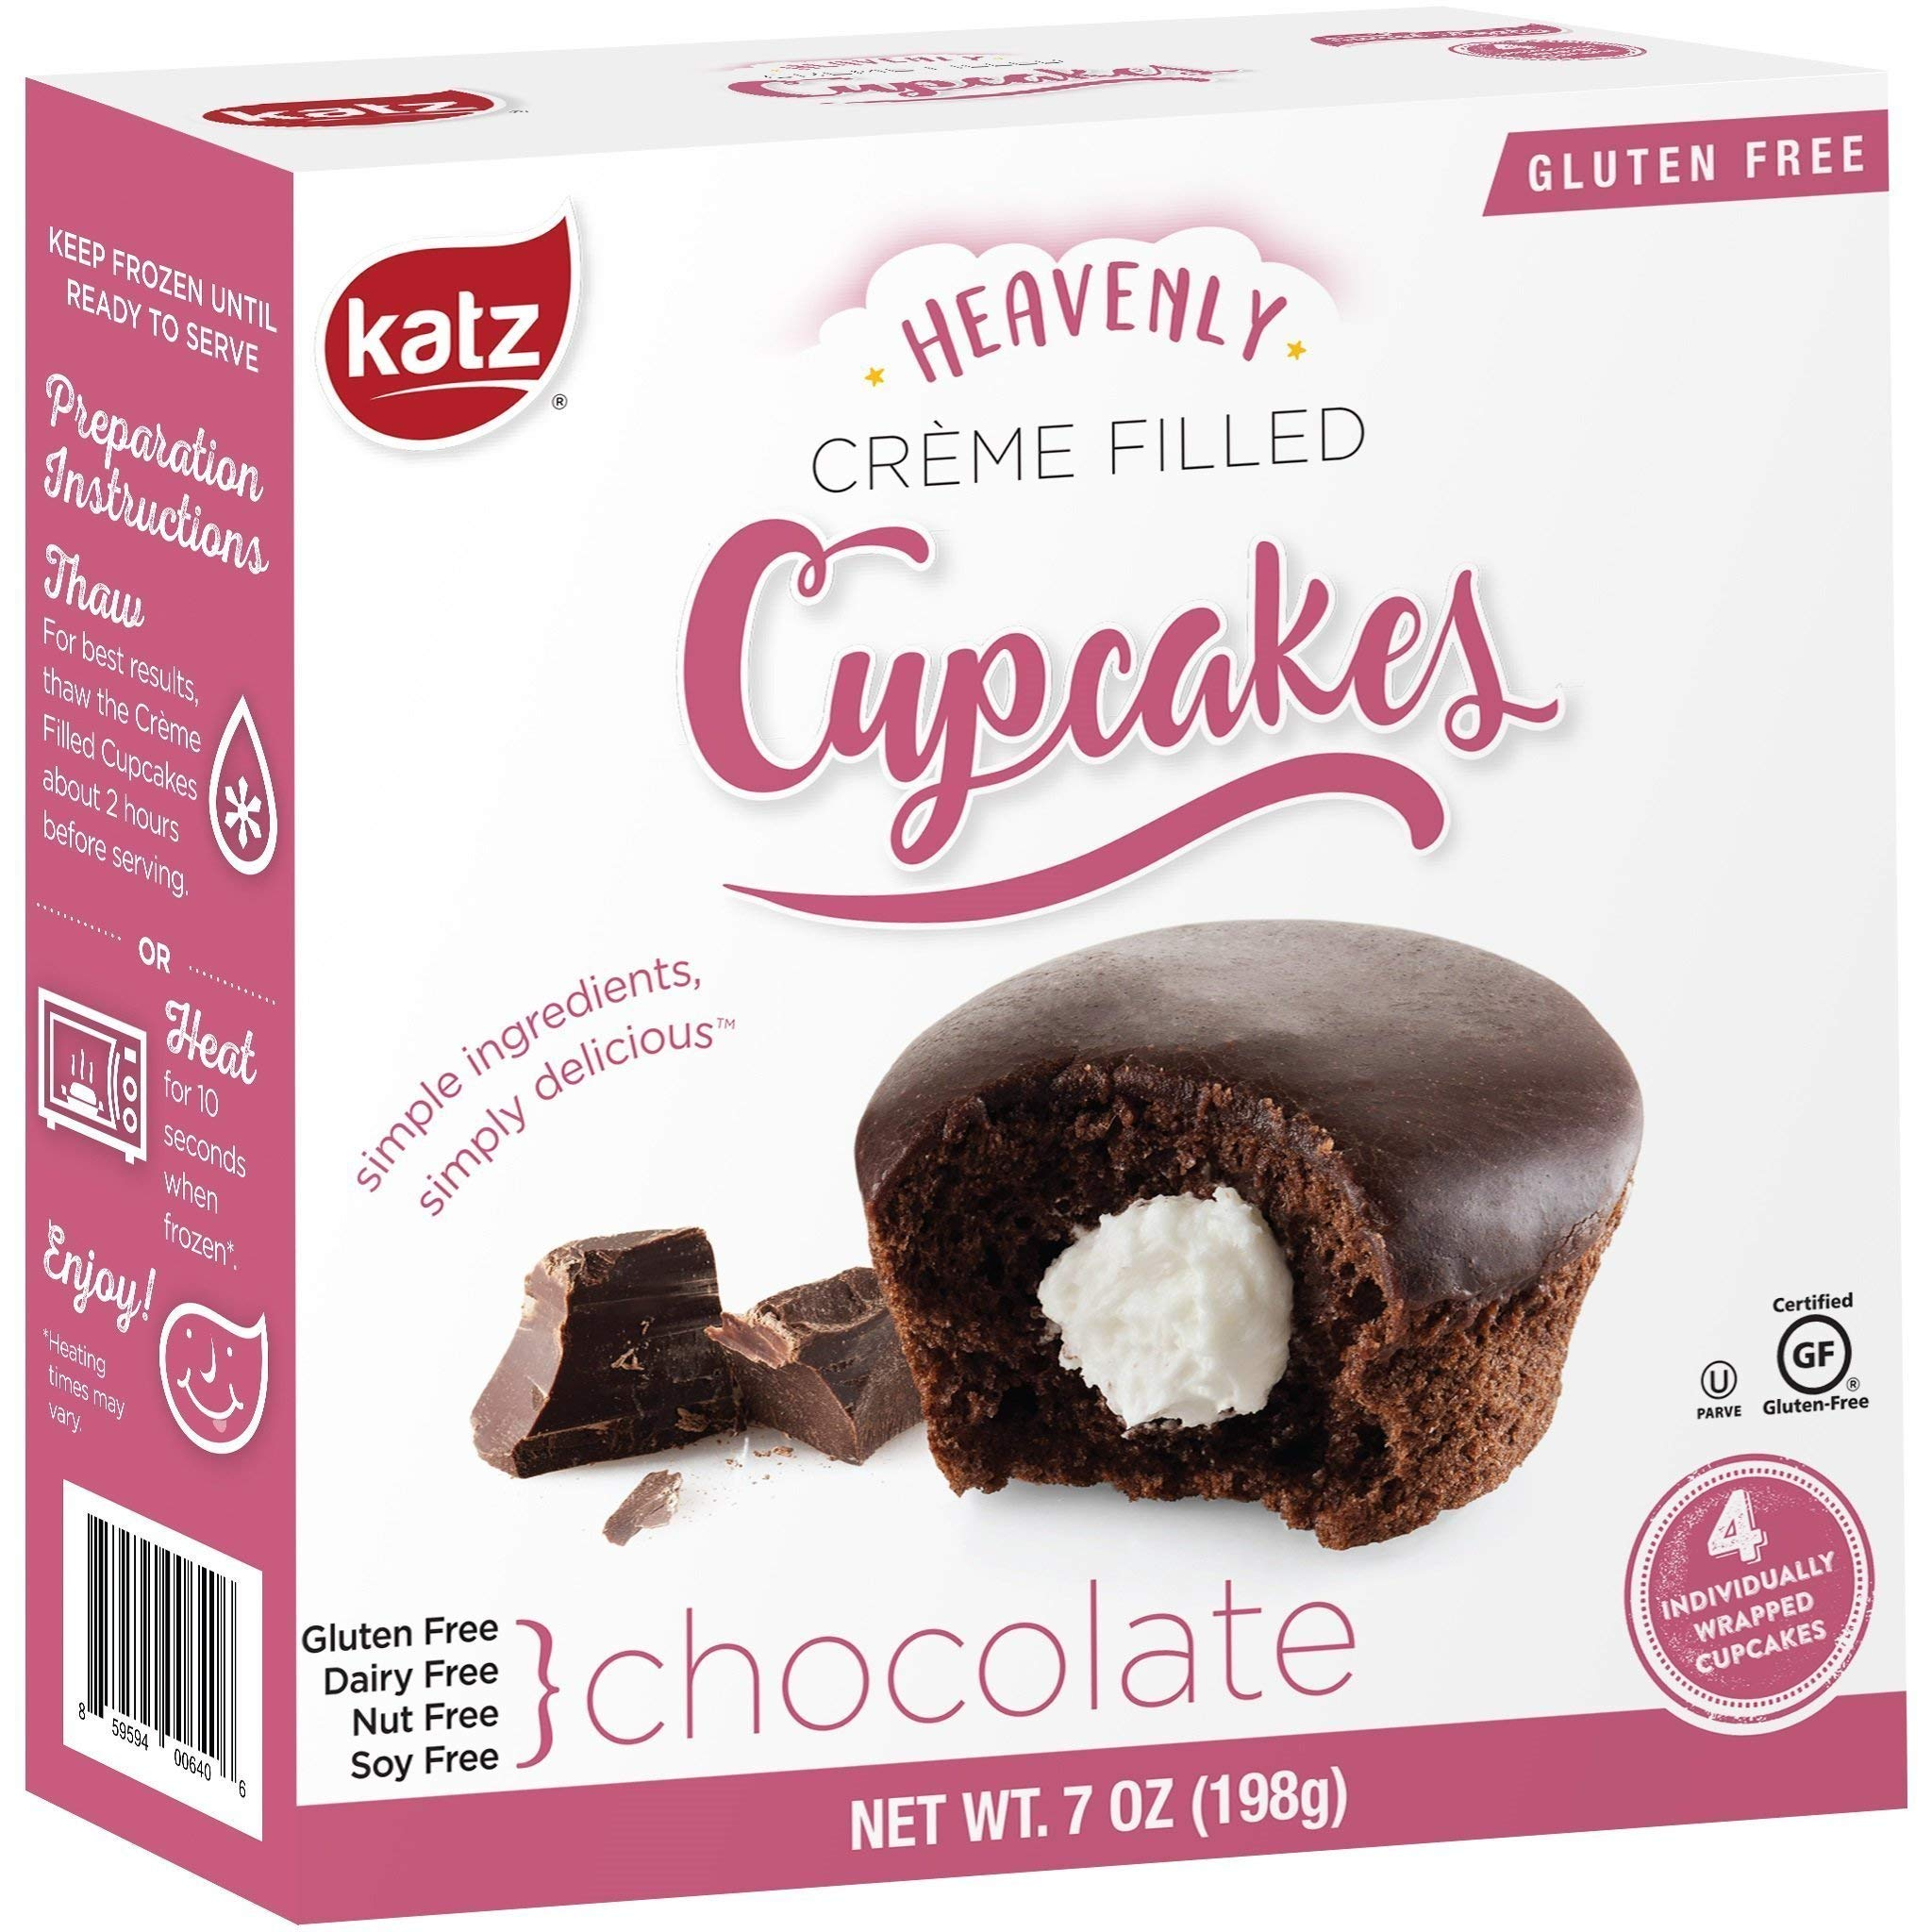 Katz Gluten Free Snacks Chocolate Crème Filled Cupcakes | Dairy Free, Nut Free, Soy Free, Gluten Free | Kosher (3 Packs of 4 Crème Cupcakes, 12 Total) by Katz Gluten Free